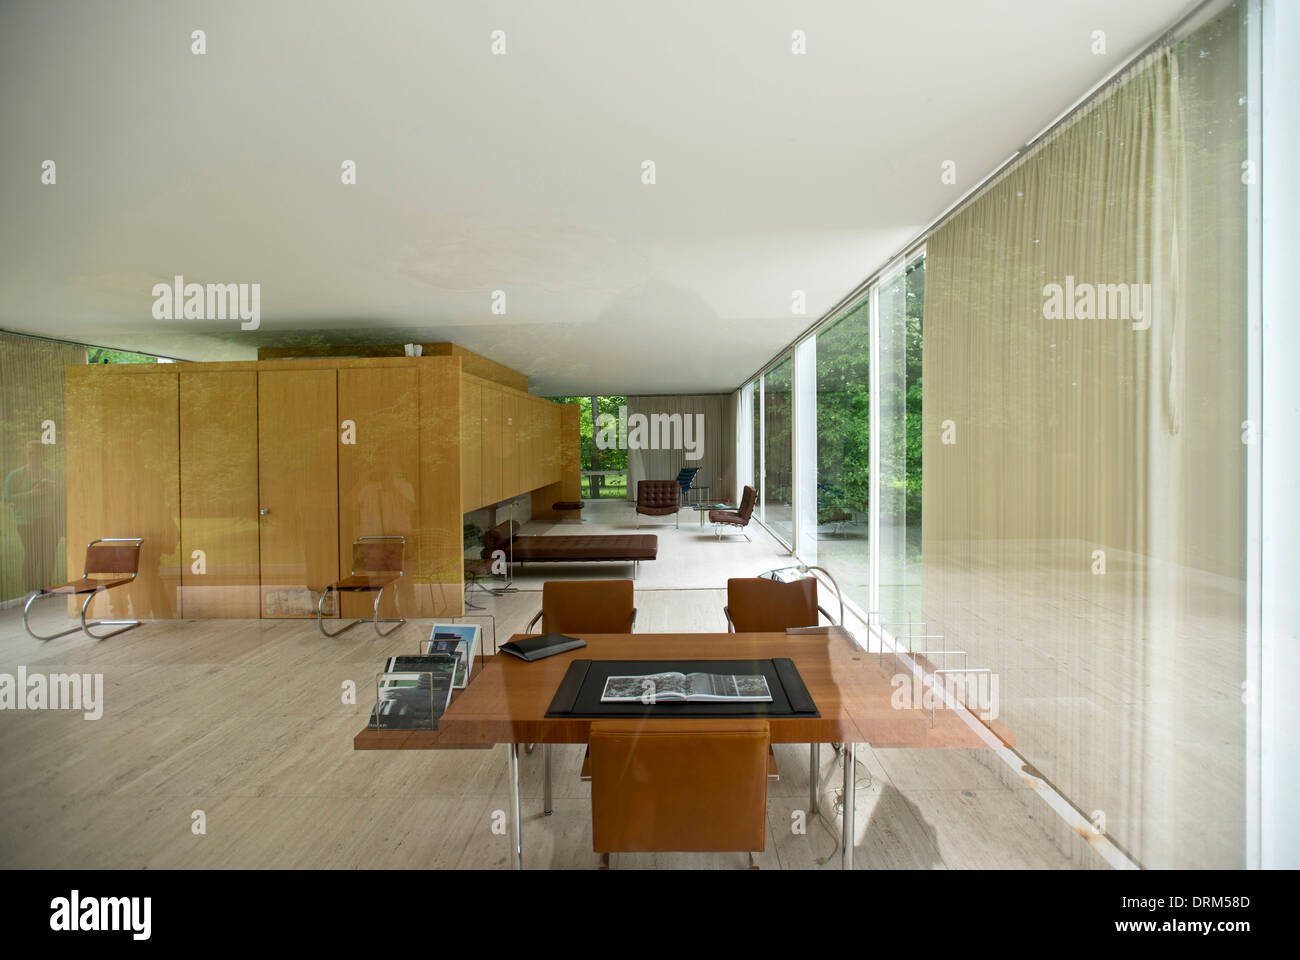 Ludwig mies van der rohe interior - Farnsworth House Plano United States Architect Ludwig Mies Van Der Rohe 1951 Interior View Of Farnsworth House